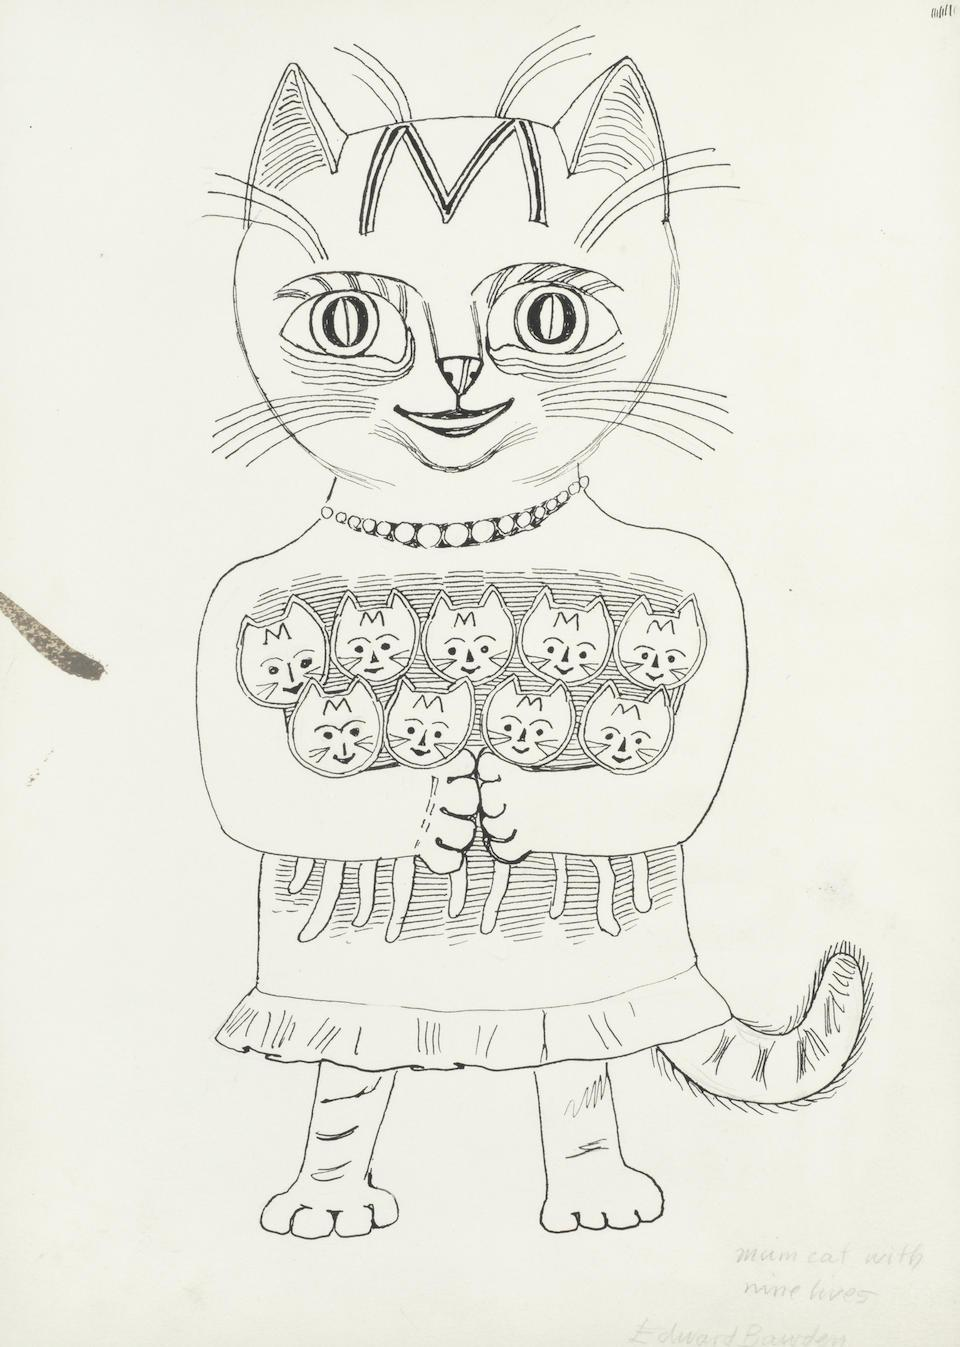 Edward Bawden drawing 'Mum Cat with Nine Lives' pen and ink Modern British Art